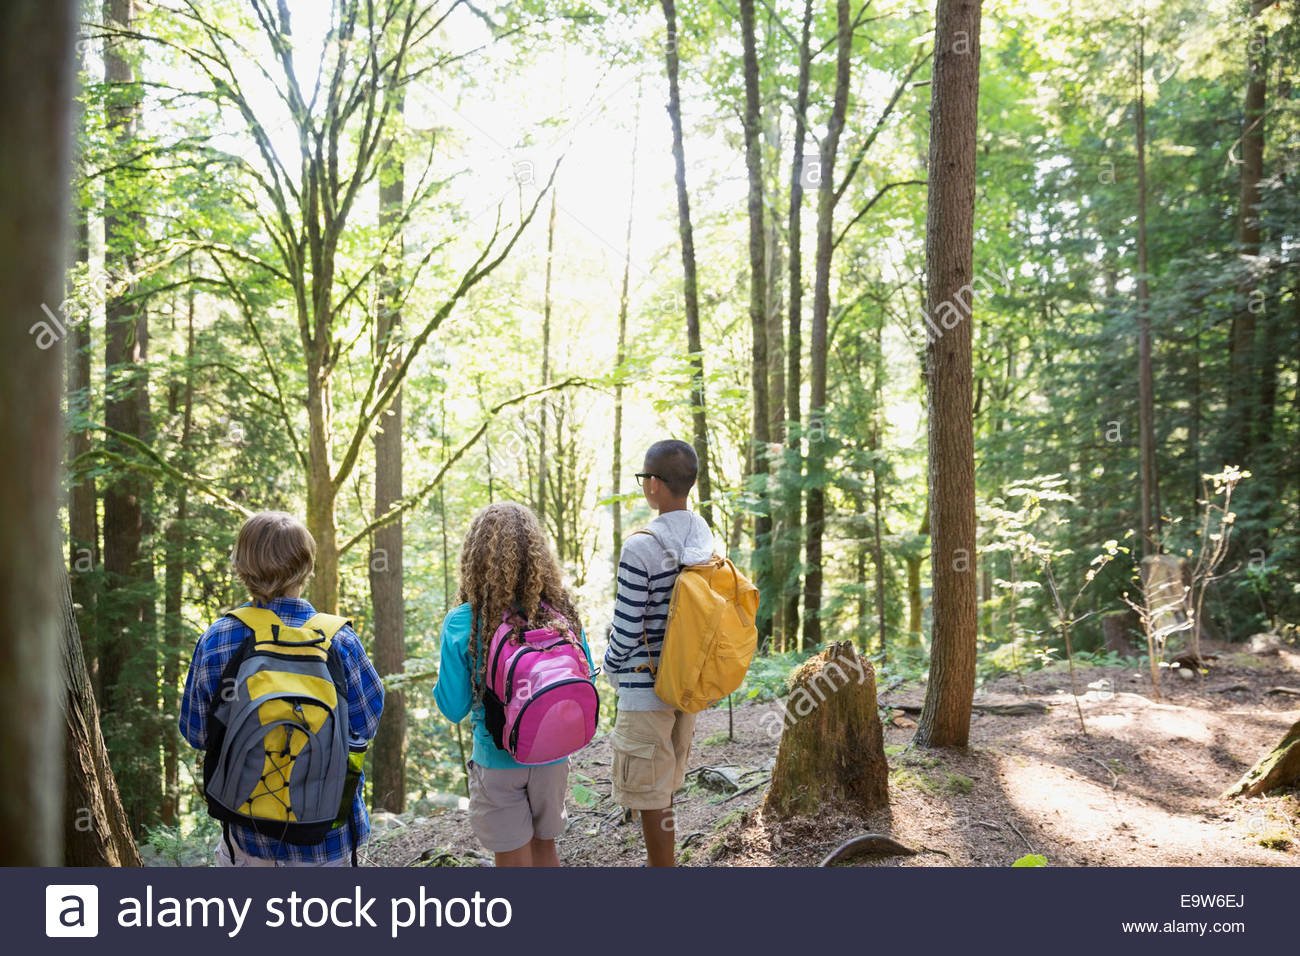 Boys and girl with backpacks hiking in woods - Stock Image